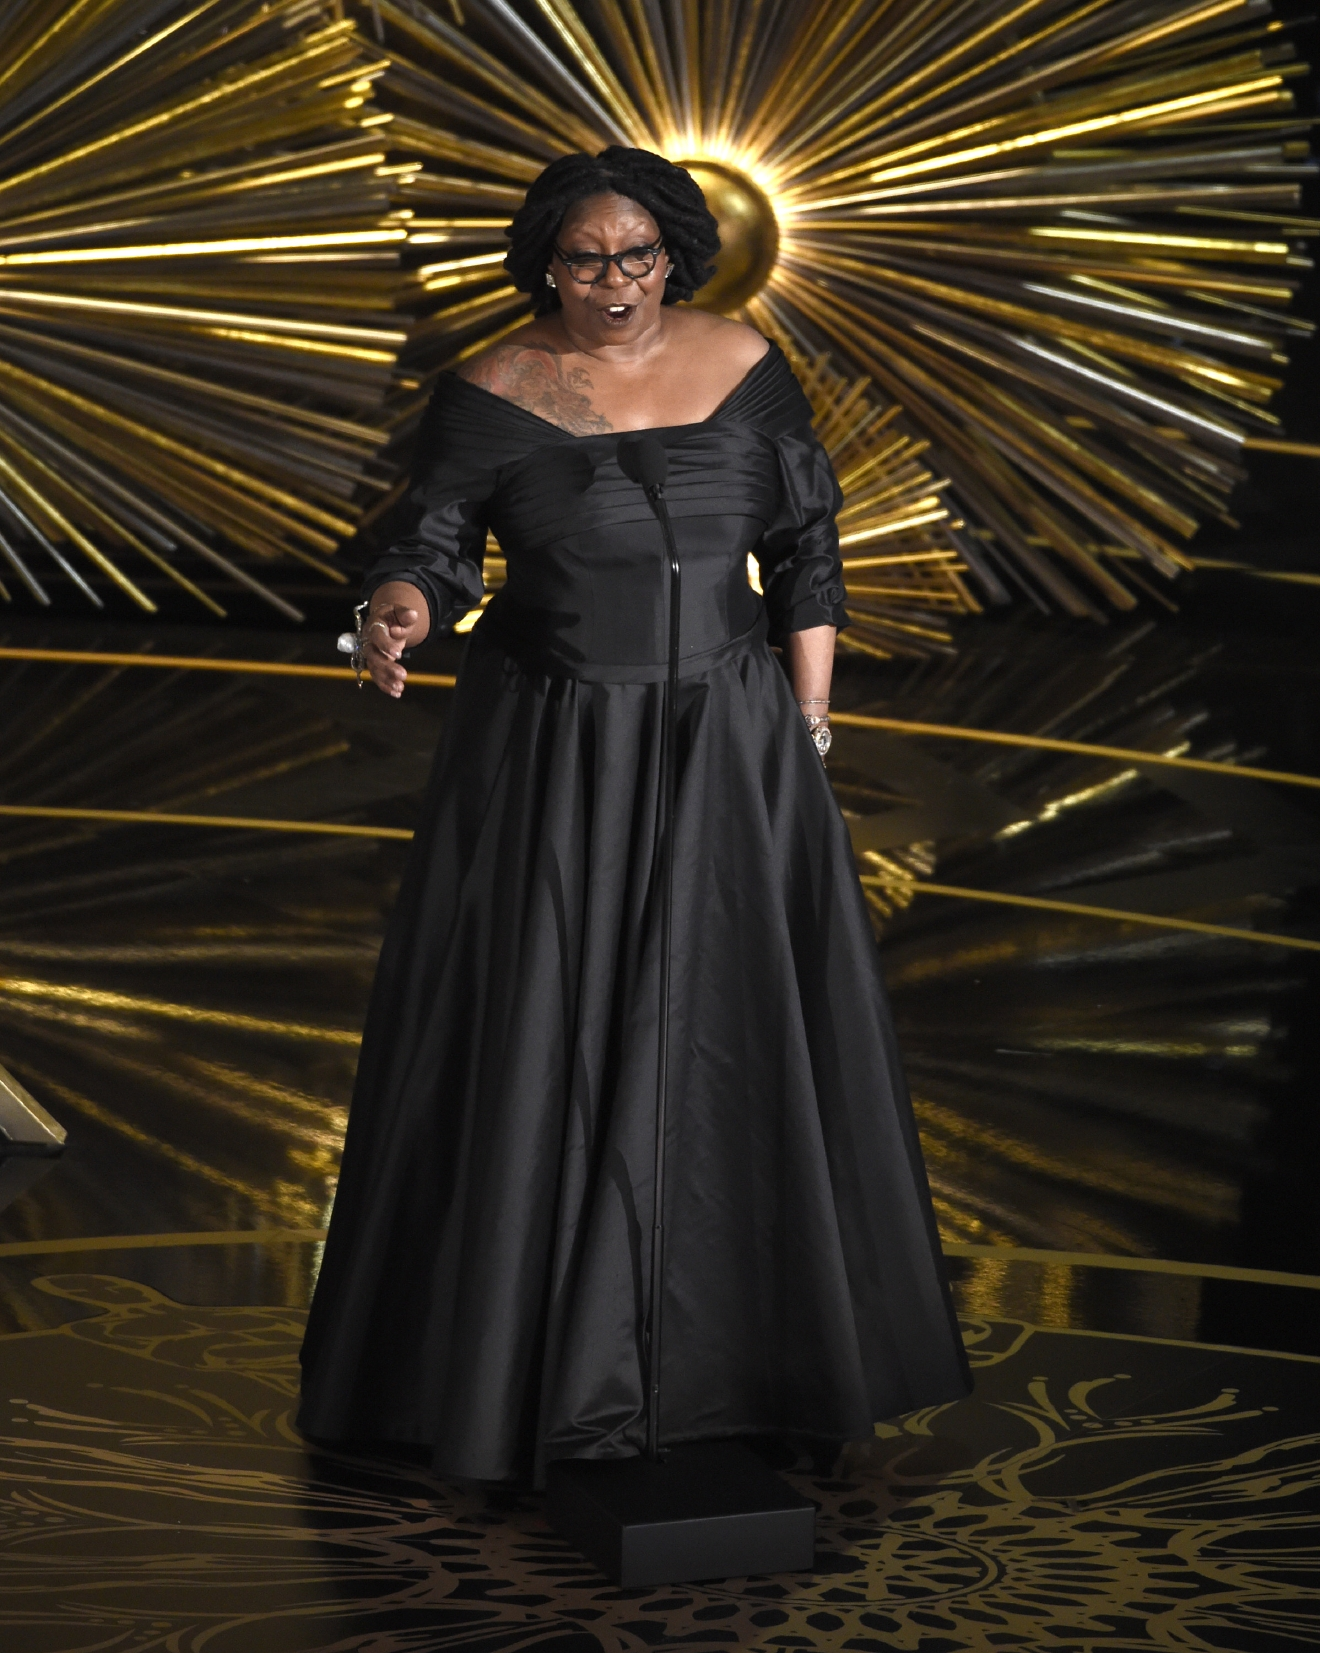 Whoopi Goldberg speaks at the Oscars on Sunday, Feb. 28, 2016, at the Dolby Theatre in Los Angeles. (Photo by Chris Pizzello/Invision/AP)